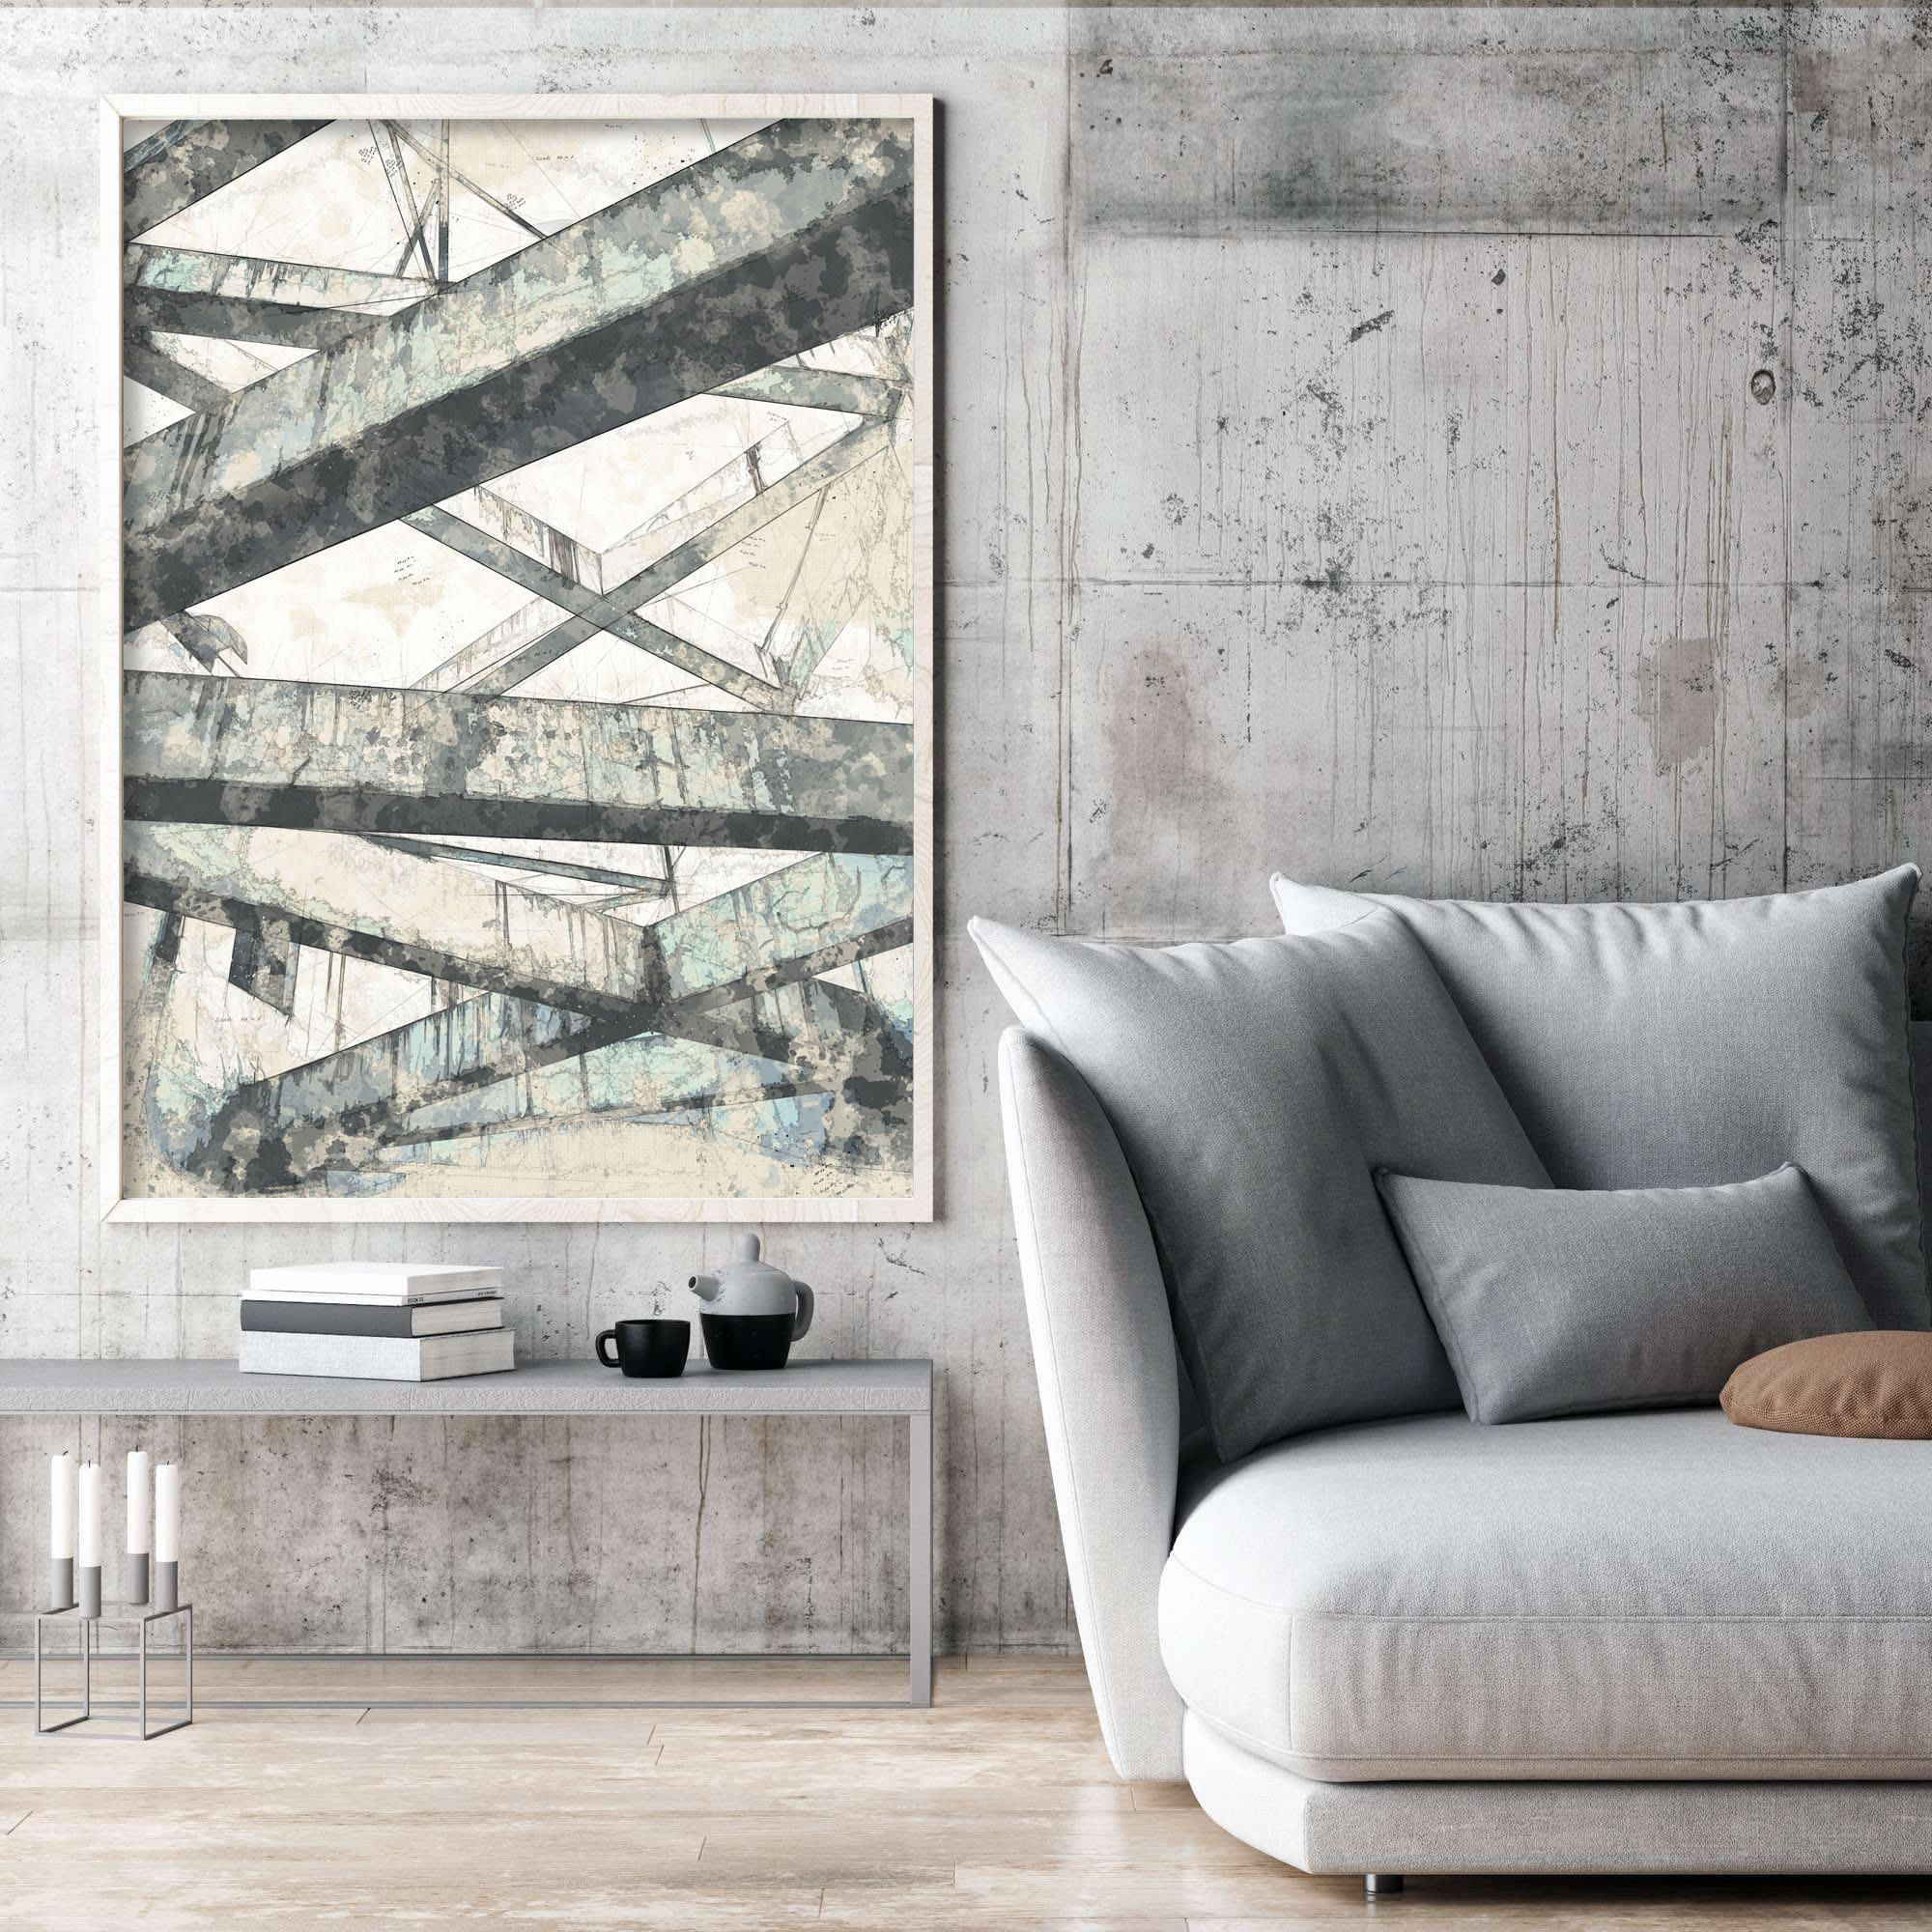 Beam Abstract Print, Abstract Architecture Illustration, Wall Art Decor, Beam